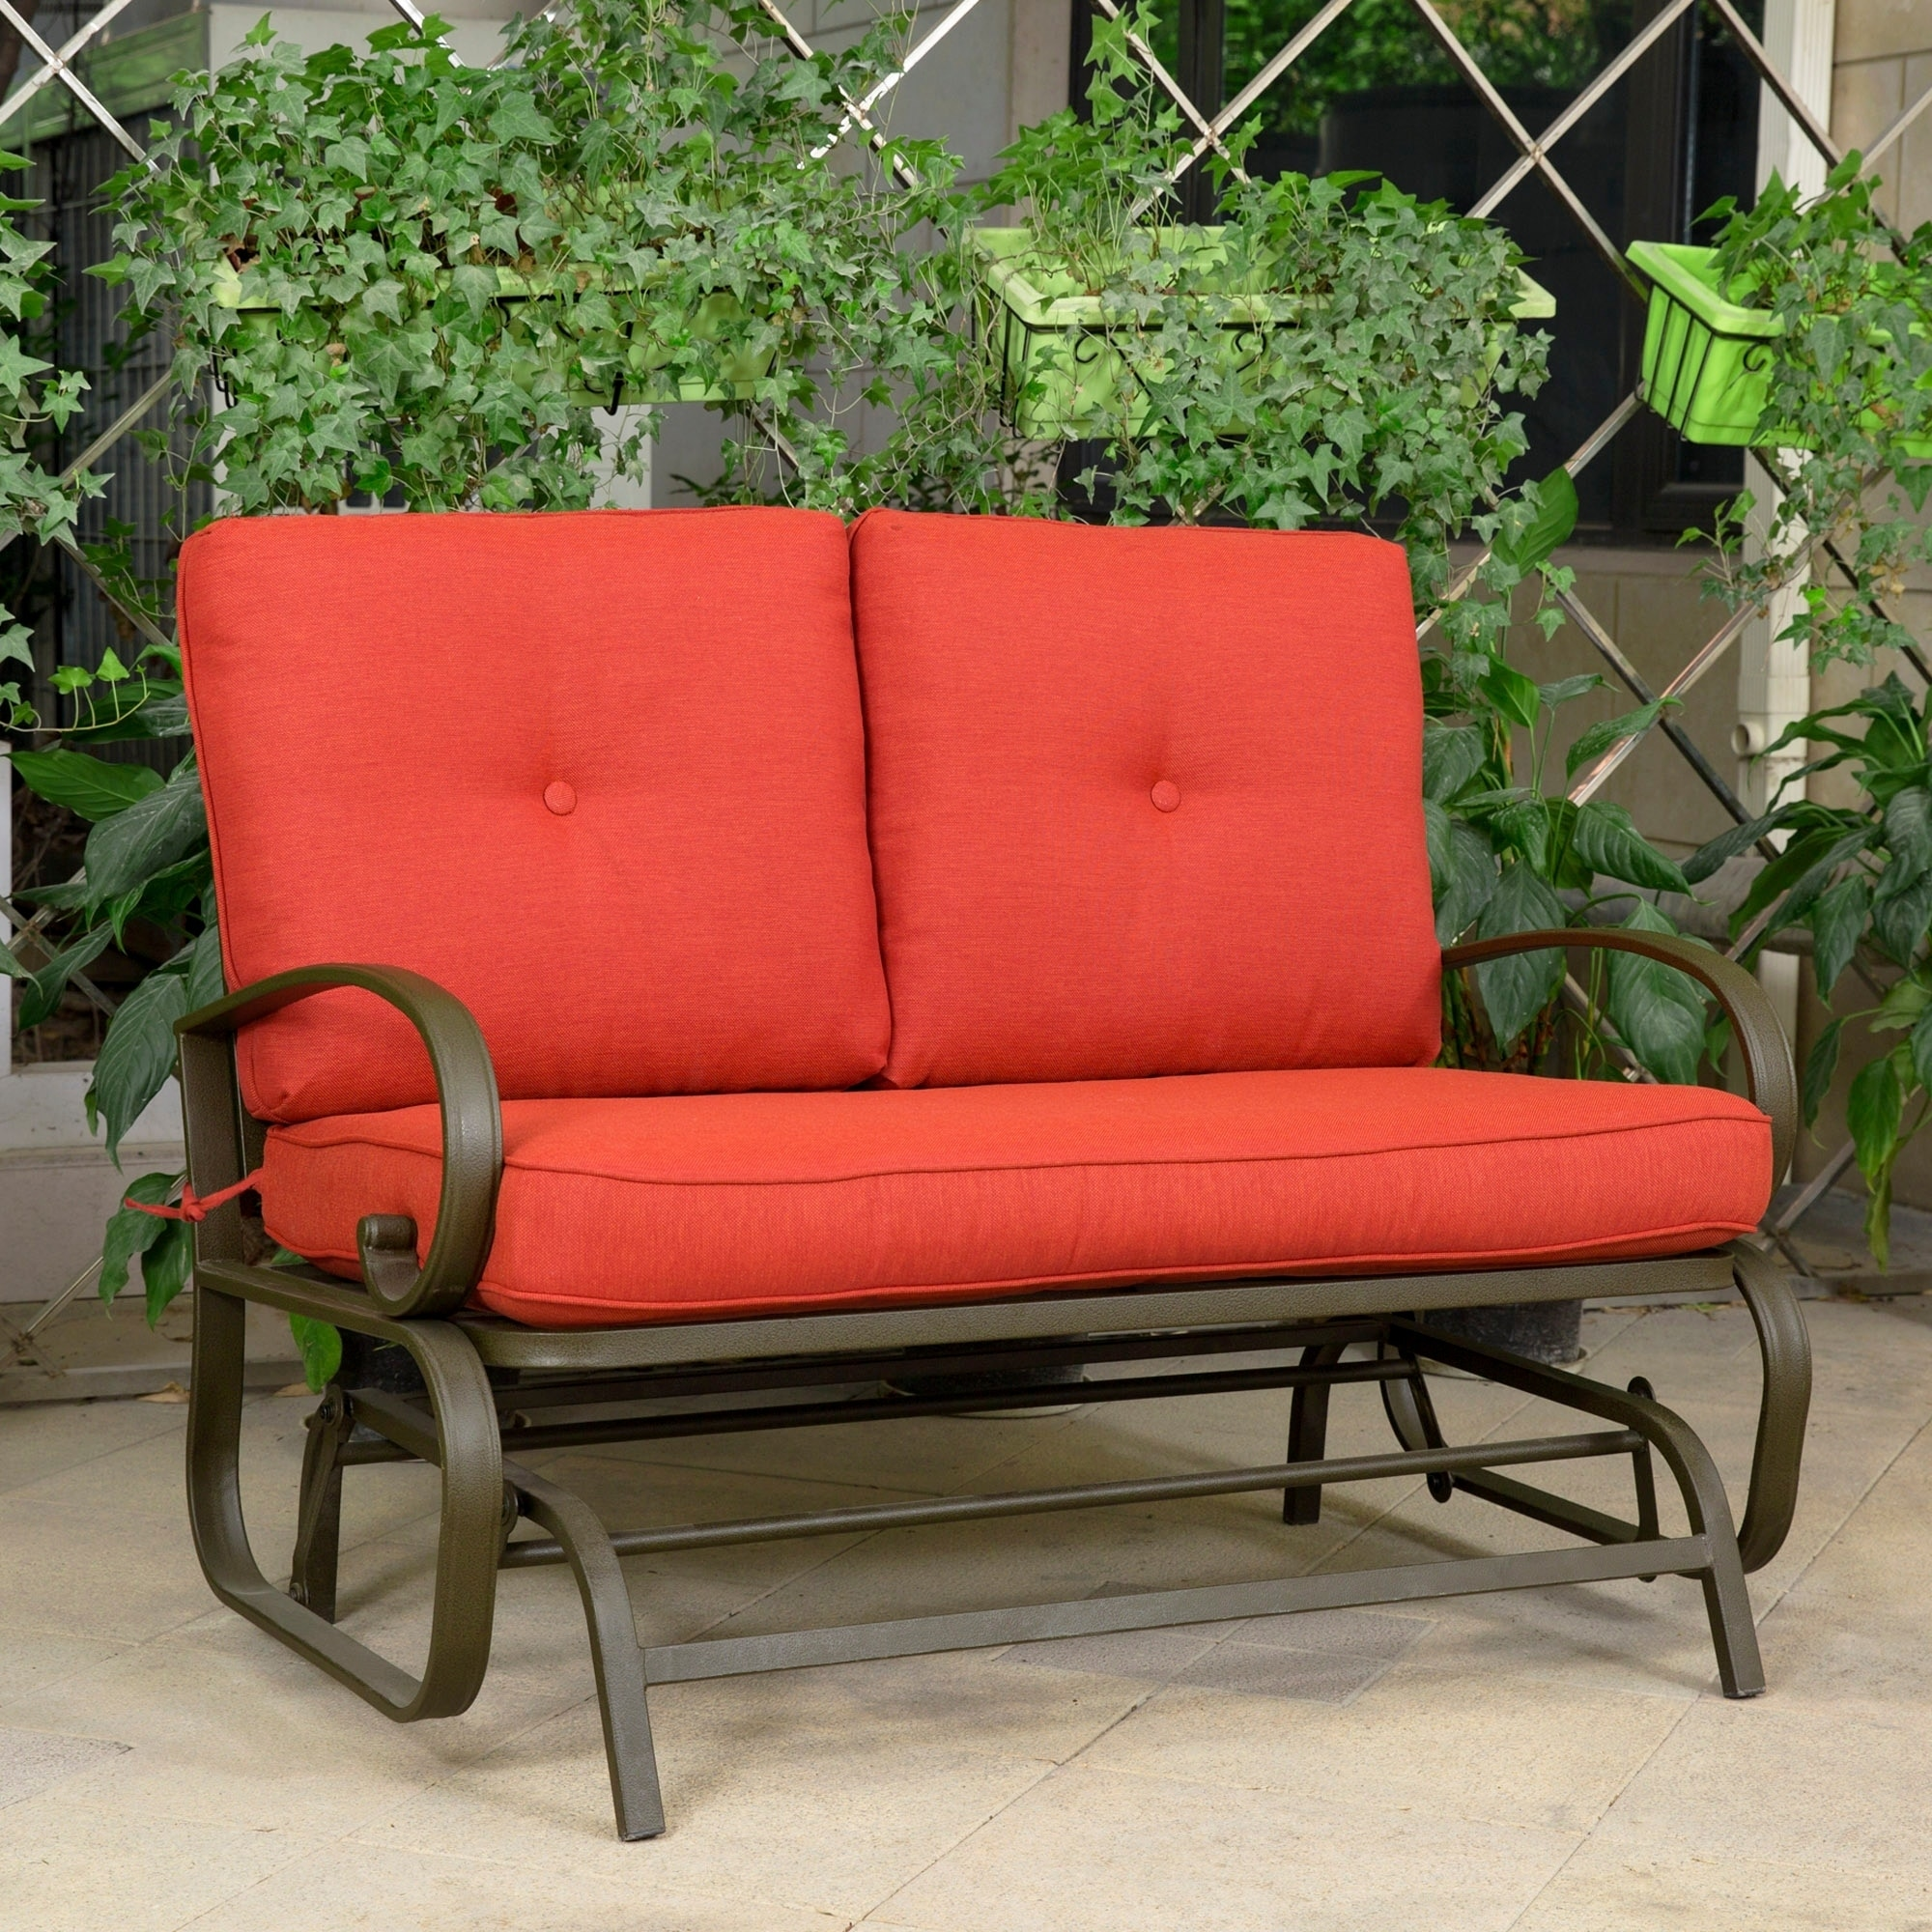 2 Person Loveseat Cushioned Rocking Bench Furniture Patio Swing Rocker  Lounge Glider Chair Outdoor Patio, Brick Red   Free Shipping Today    Overstock   ...